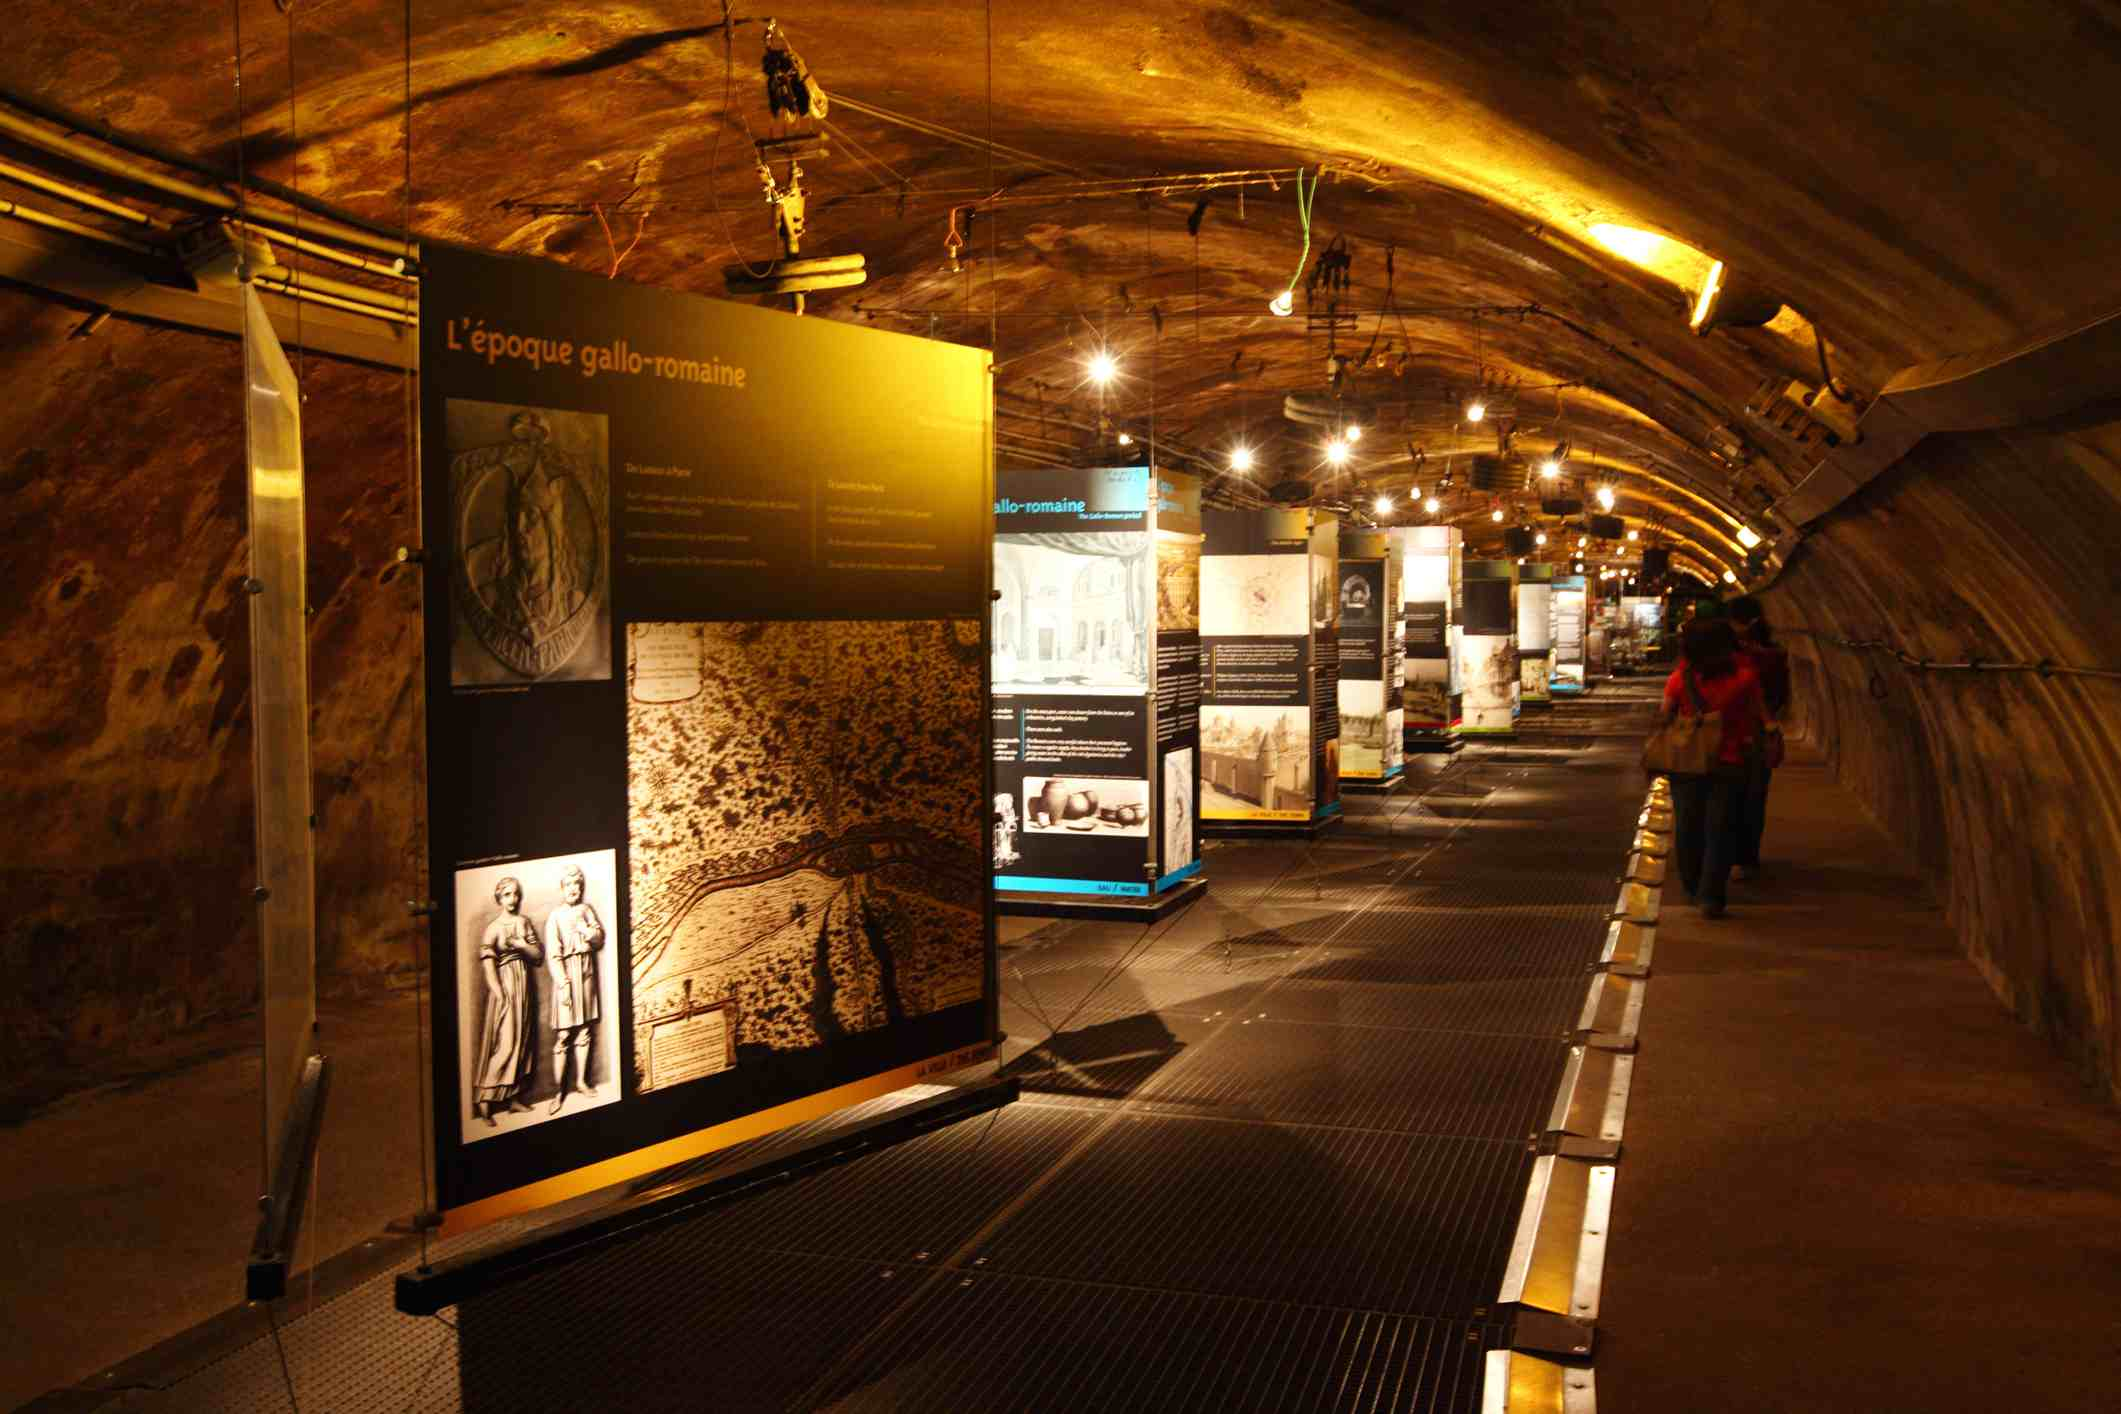 An exhibit at the Paris Sewer Museum